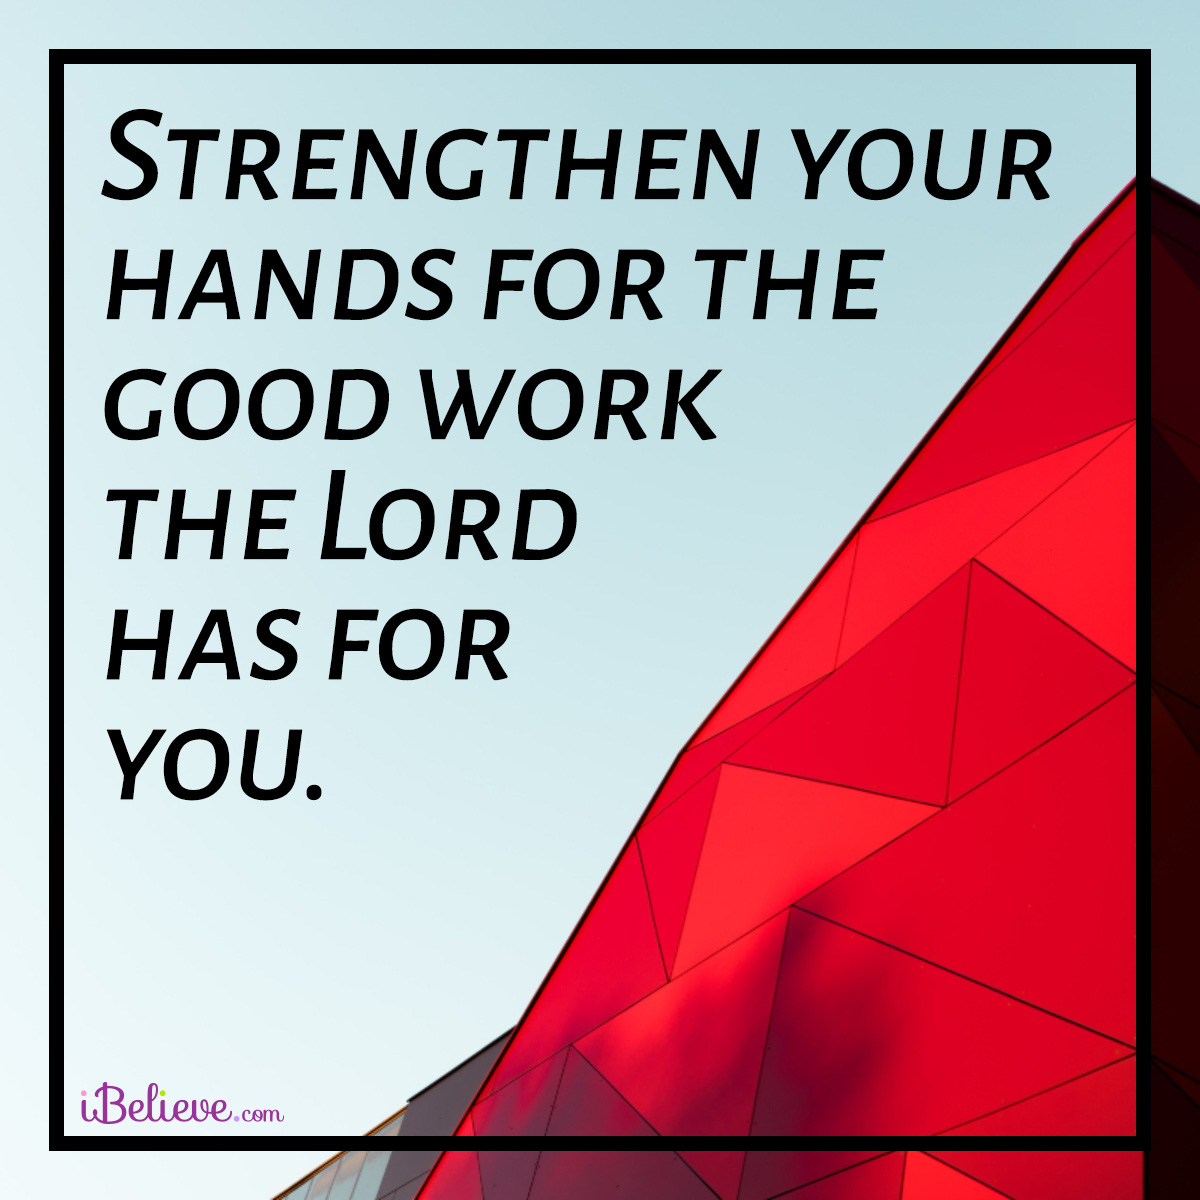 inspirational image about strength in God